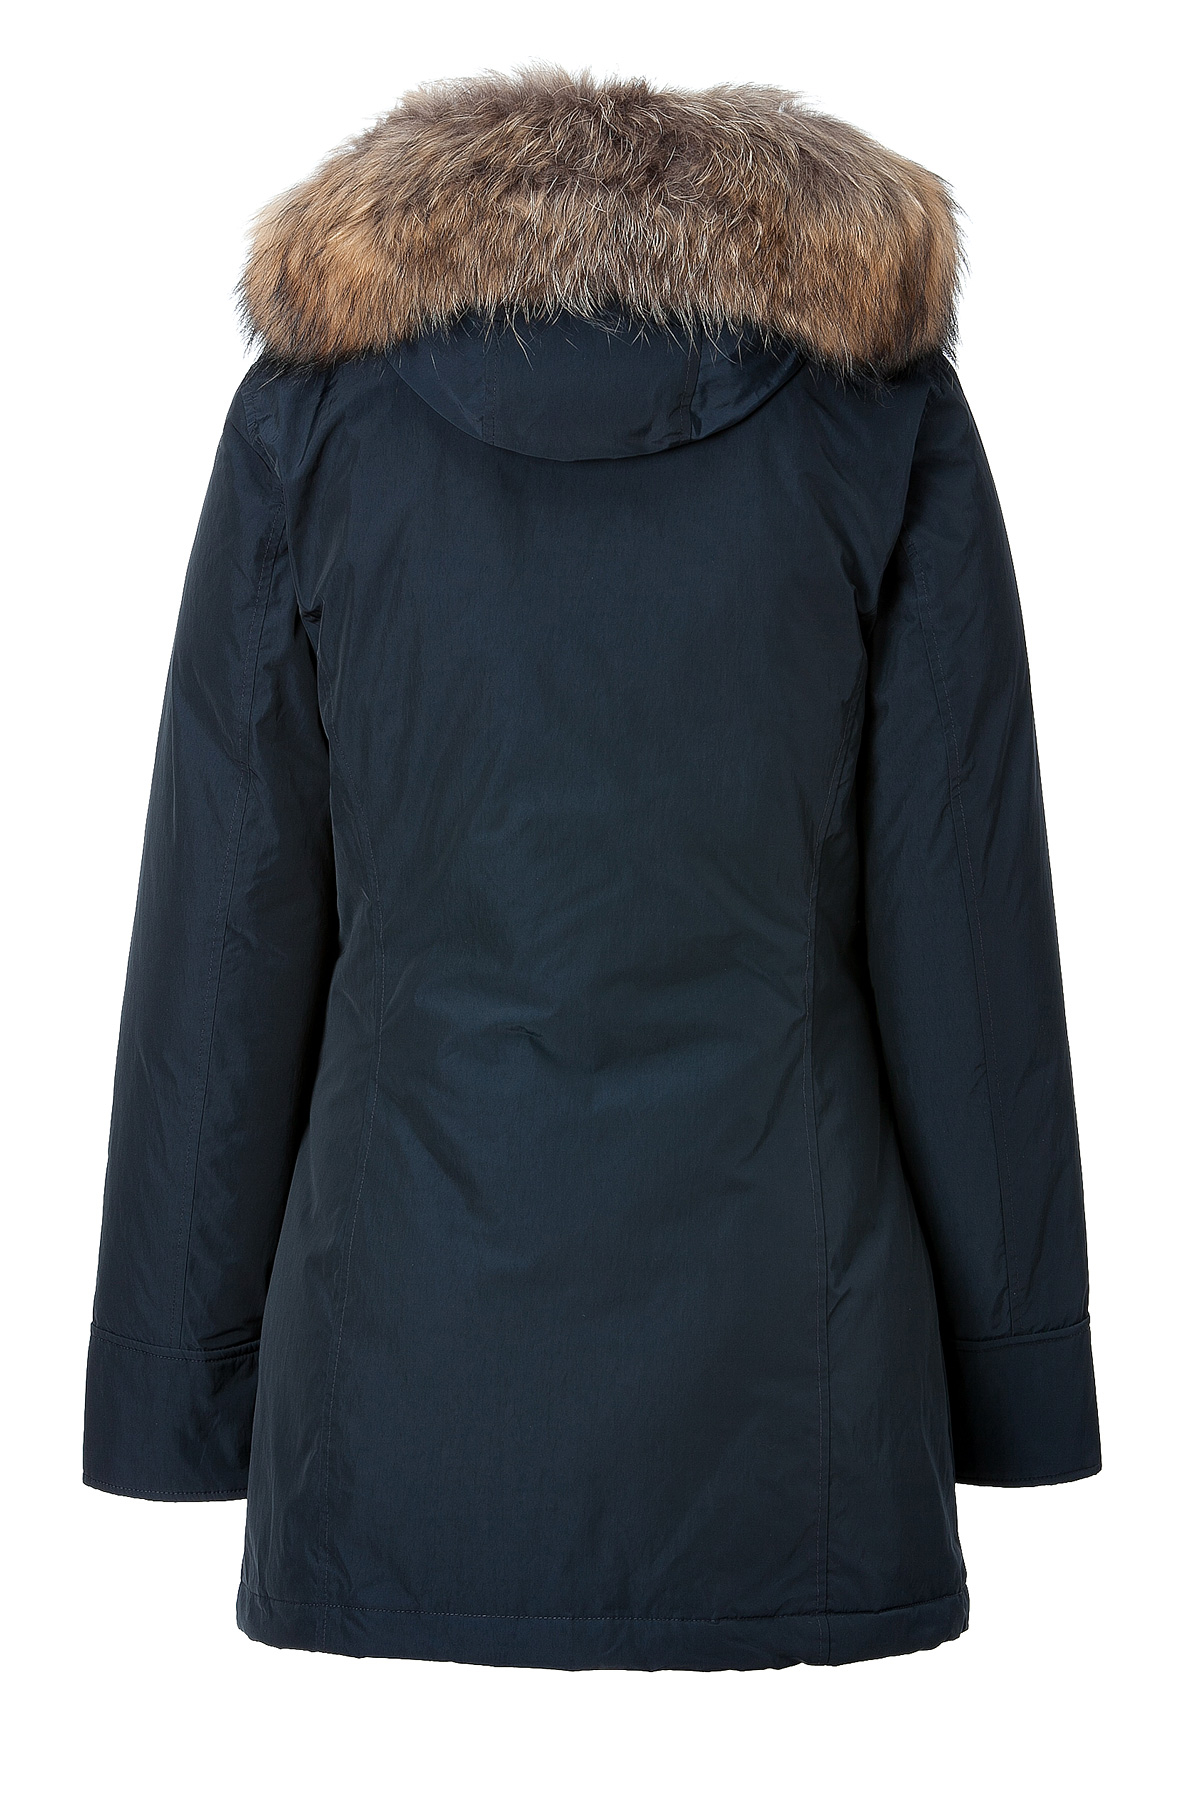 woolrich luxury arctic parka in midnight blue in blue lyst. Black Bedroom Furniture Sets. Home Design Ideas